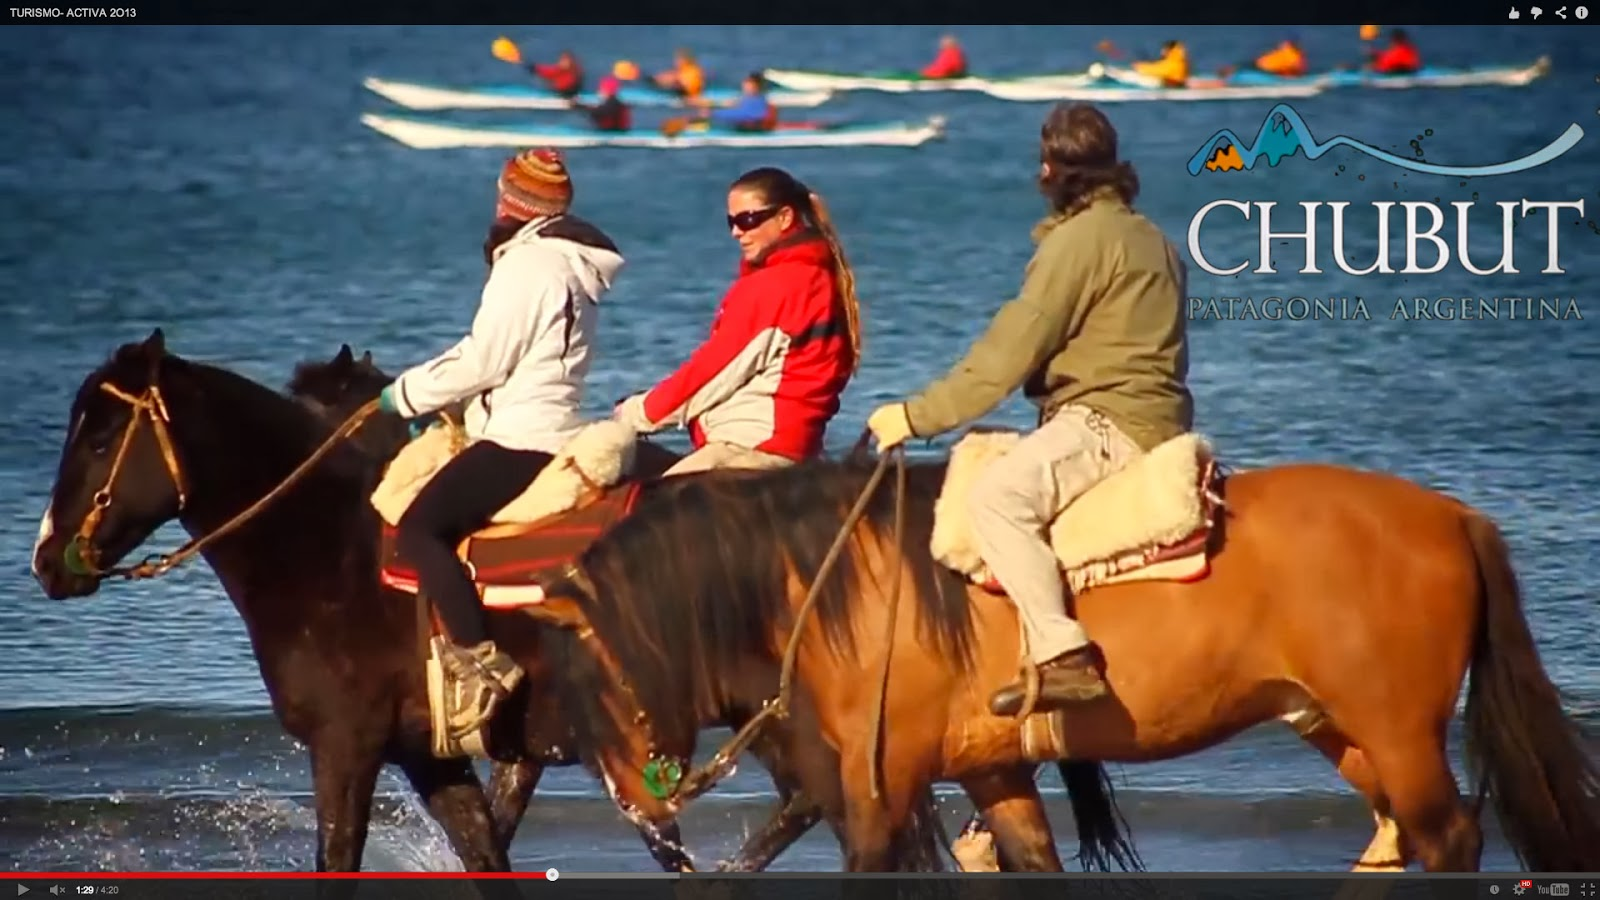 Chubut in a video full of nature and adventure